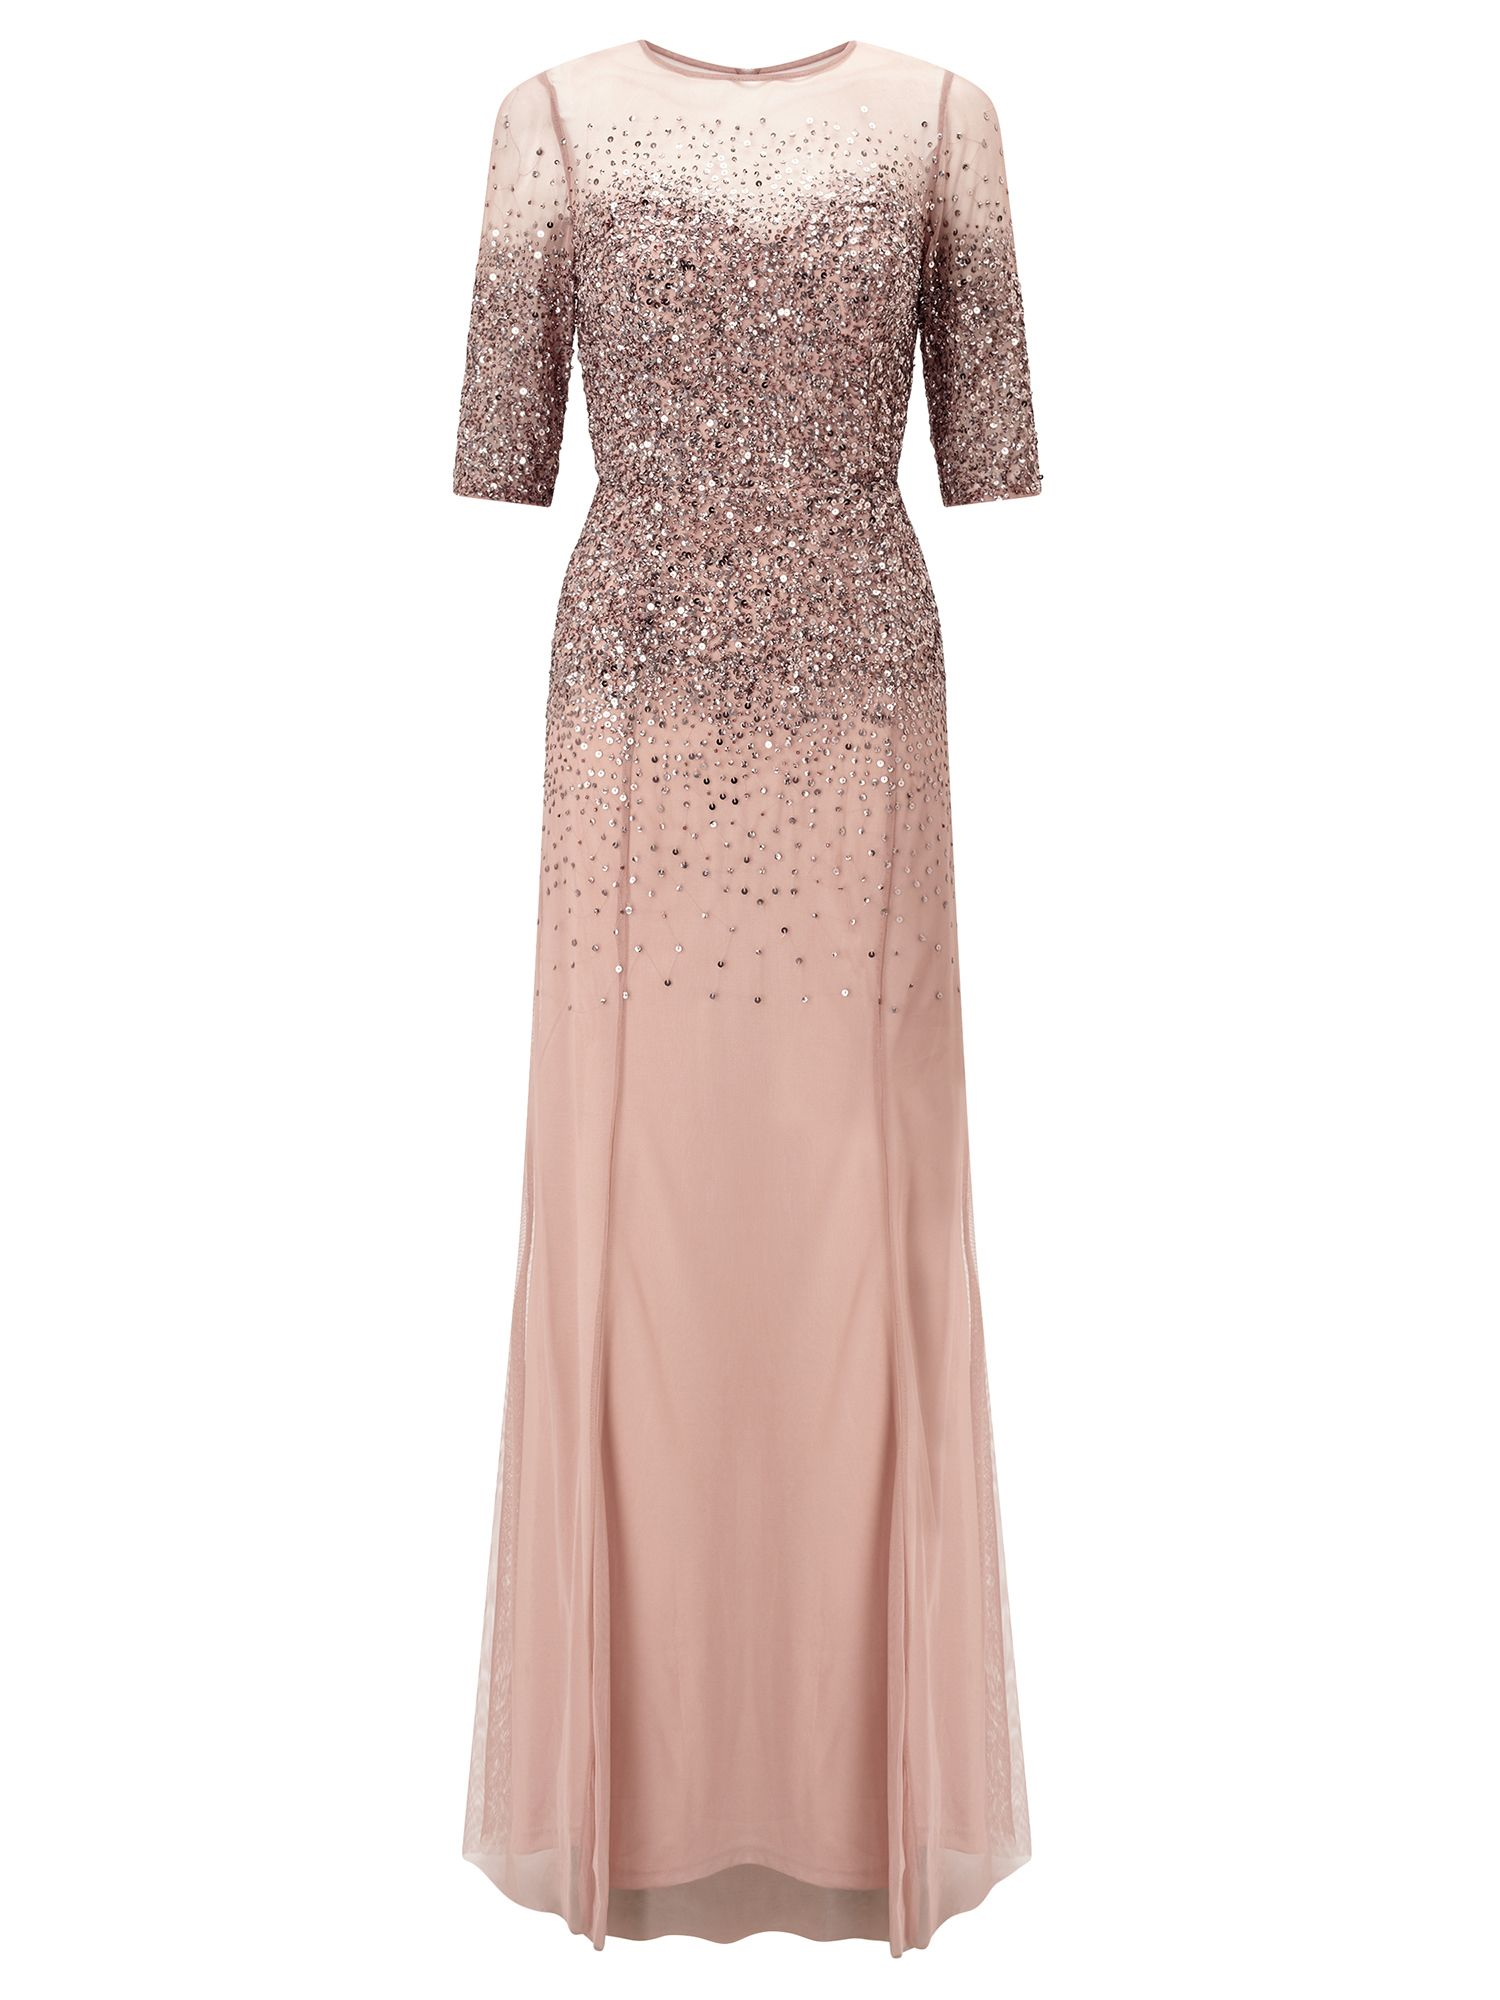 Adrianna Papell Evening Dress, Pink